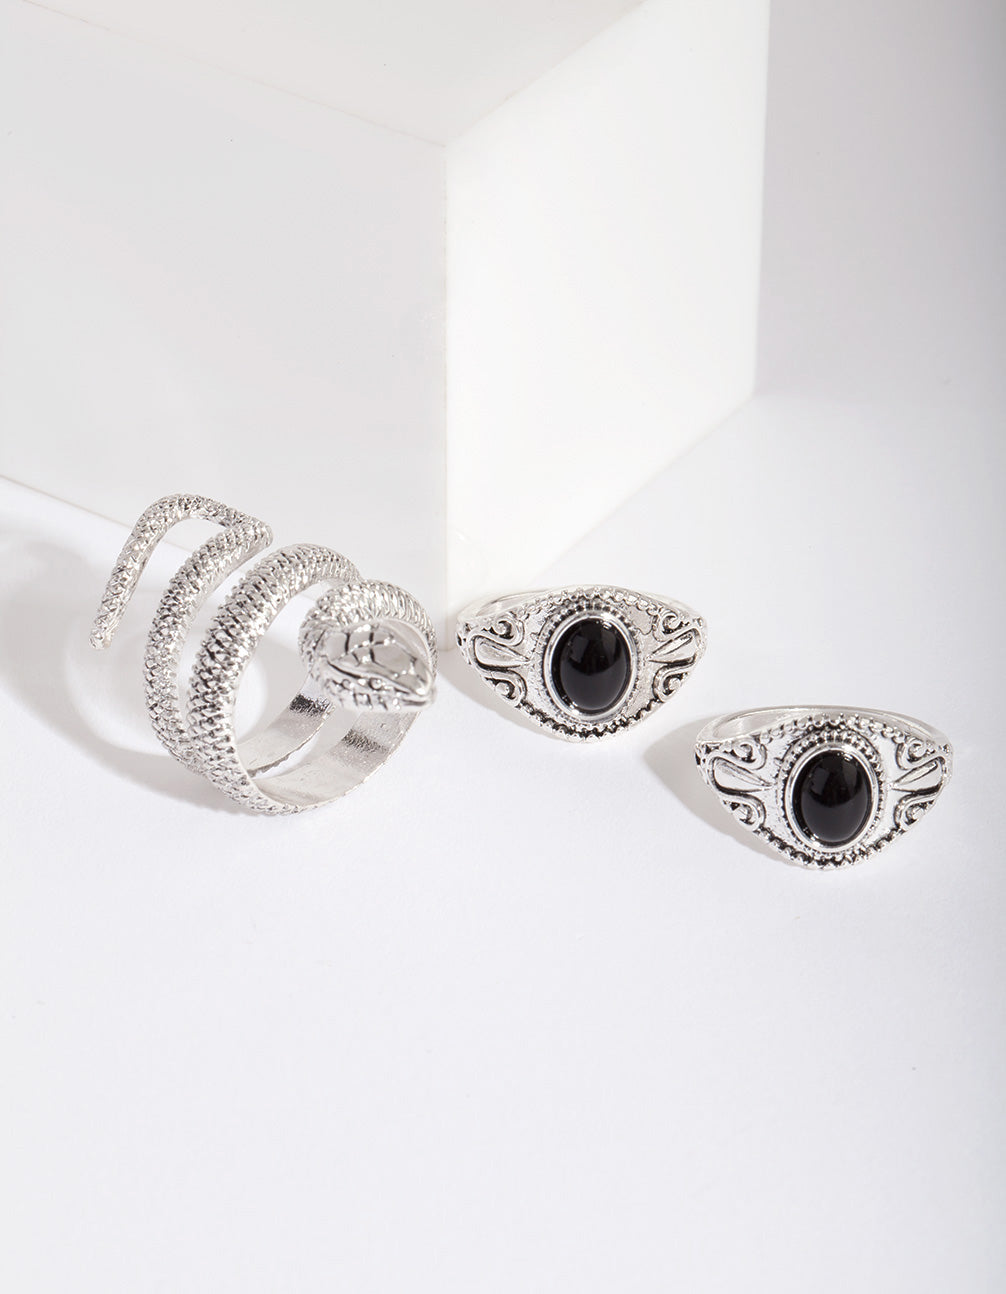 Antique Silver Bohemian Snake Ring 3 Pack